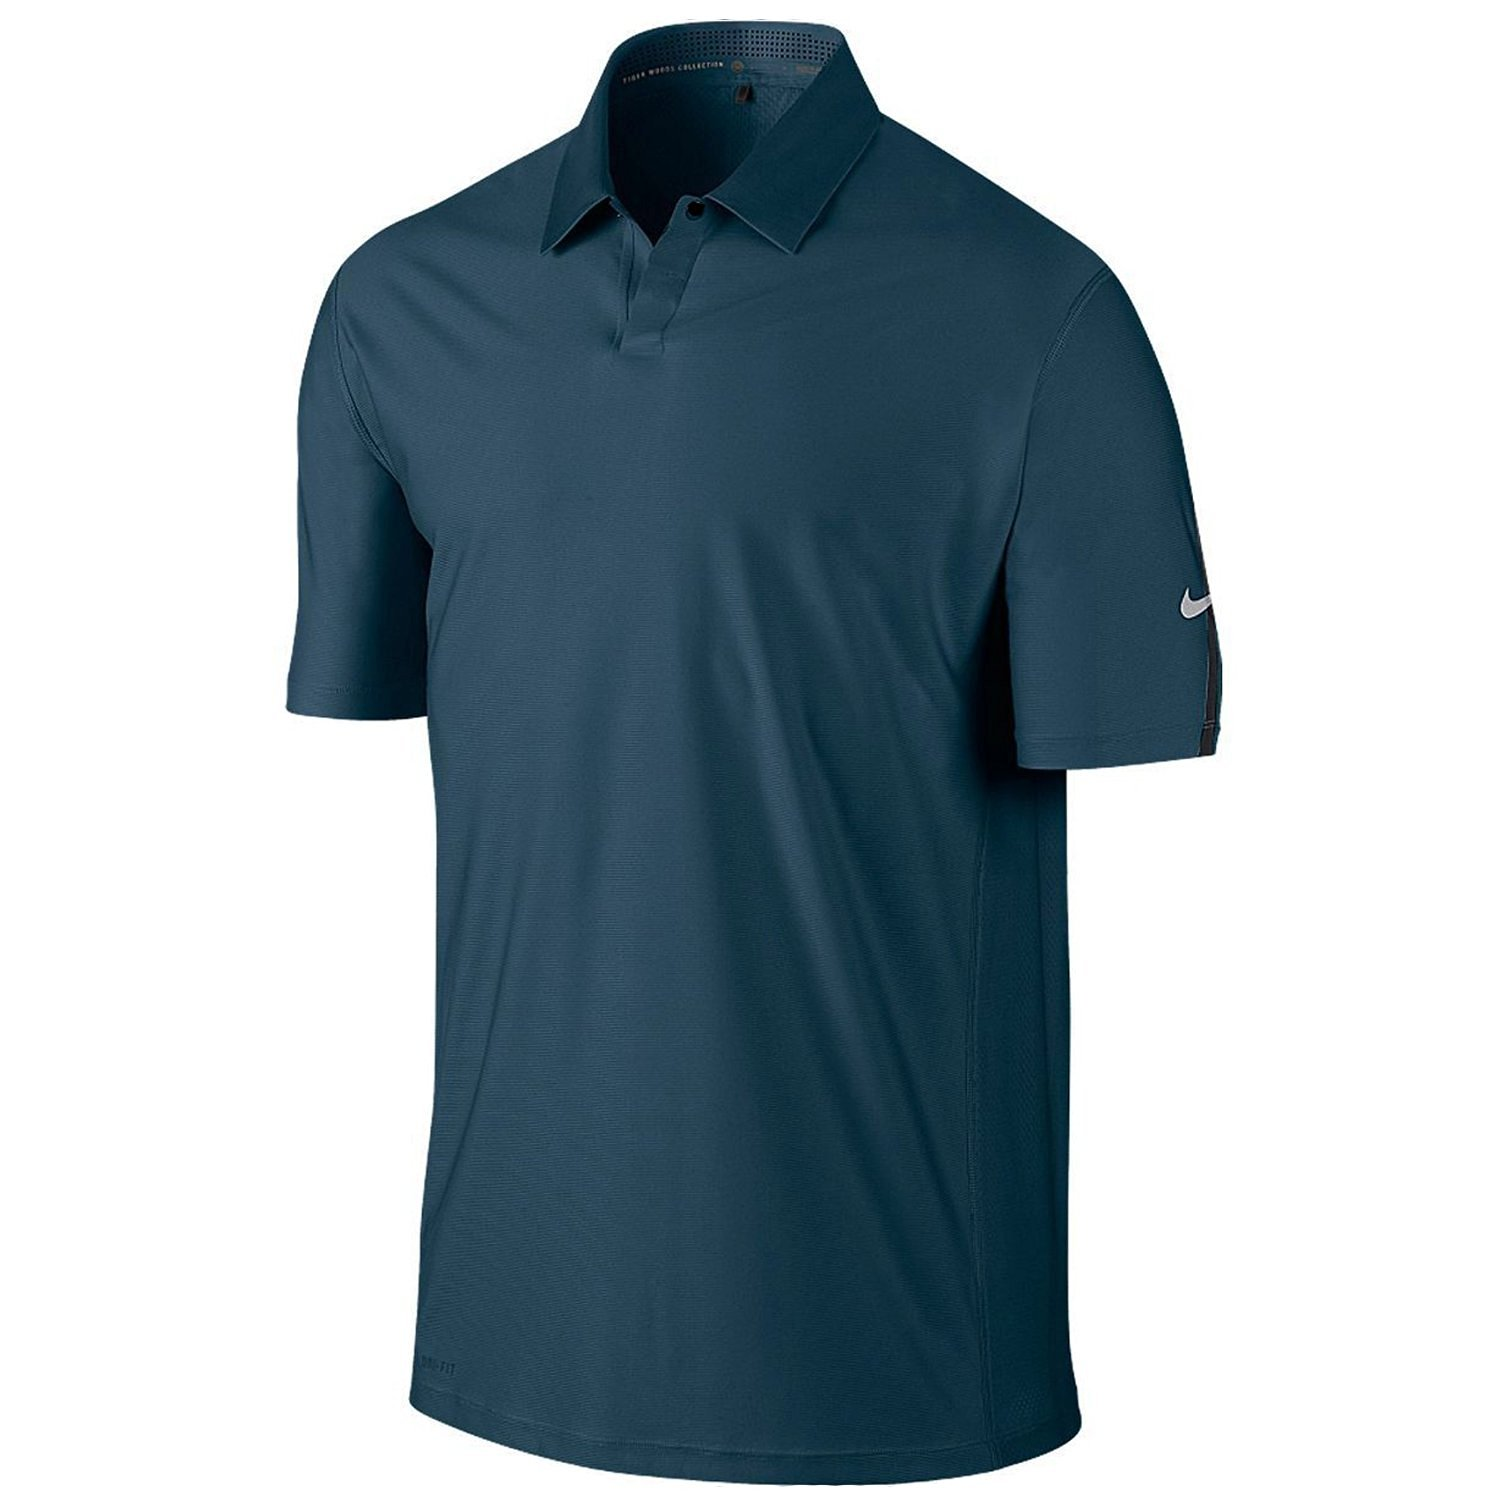 Nike Golf Polo Shirts Wholesale